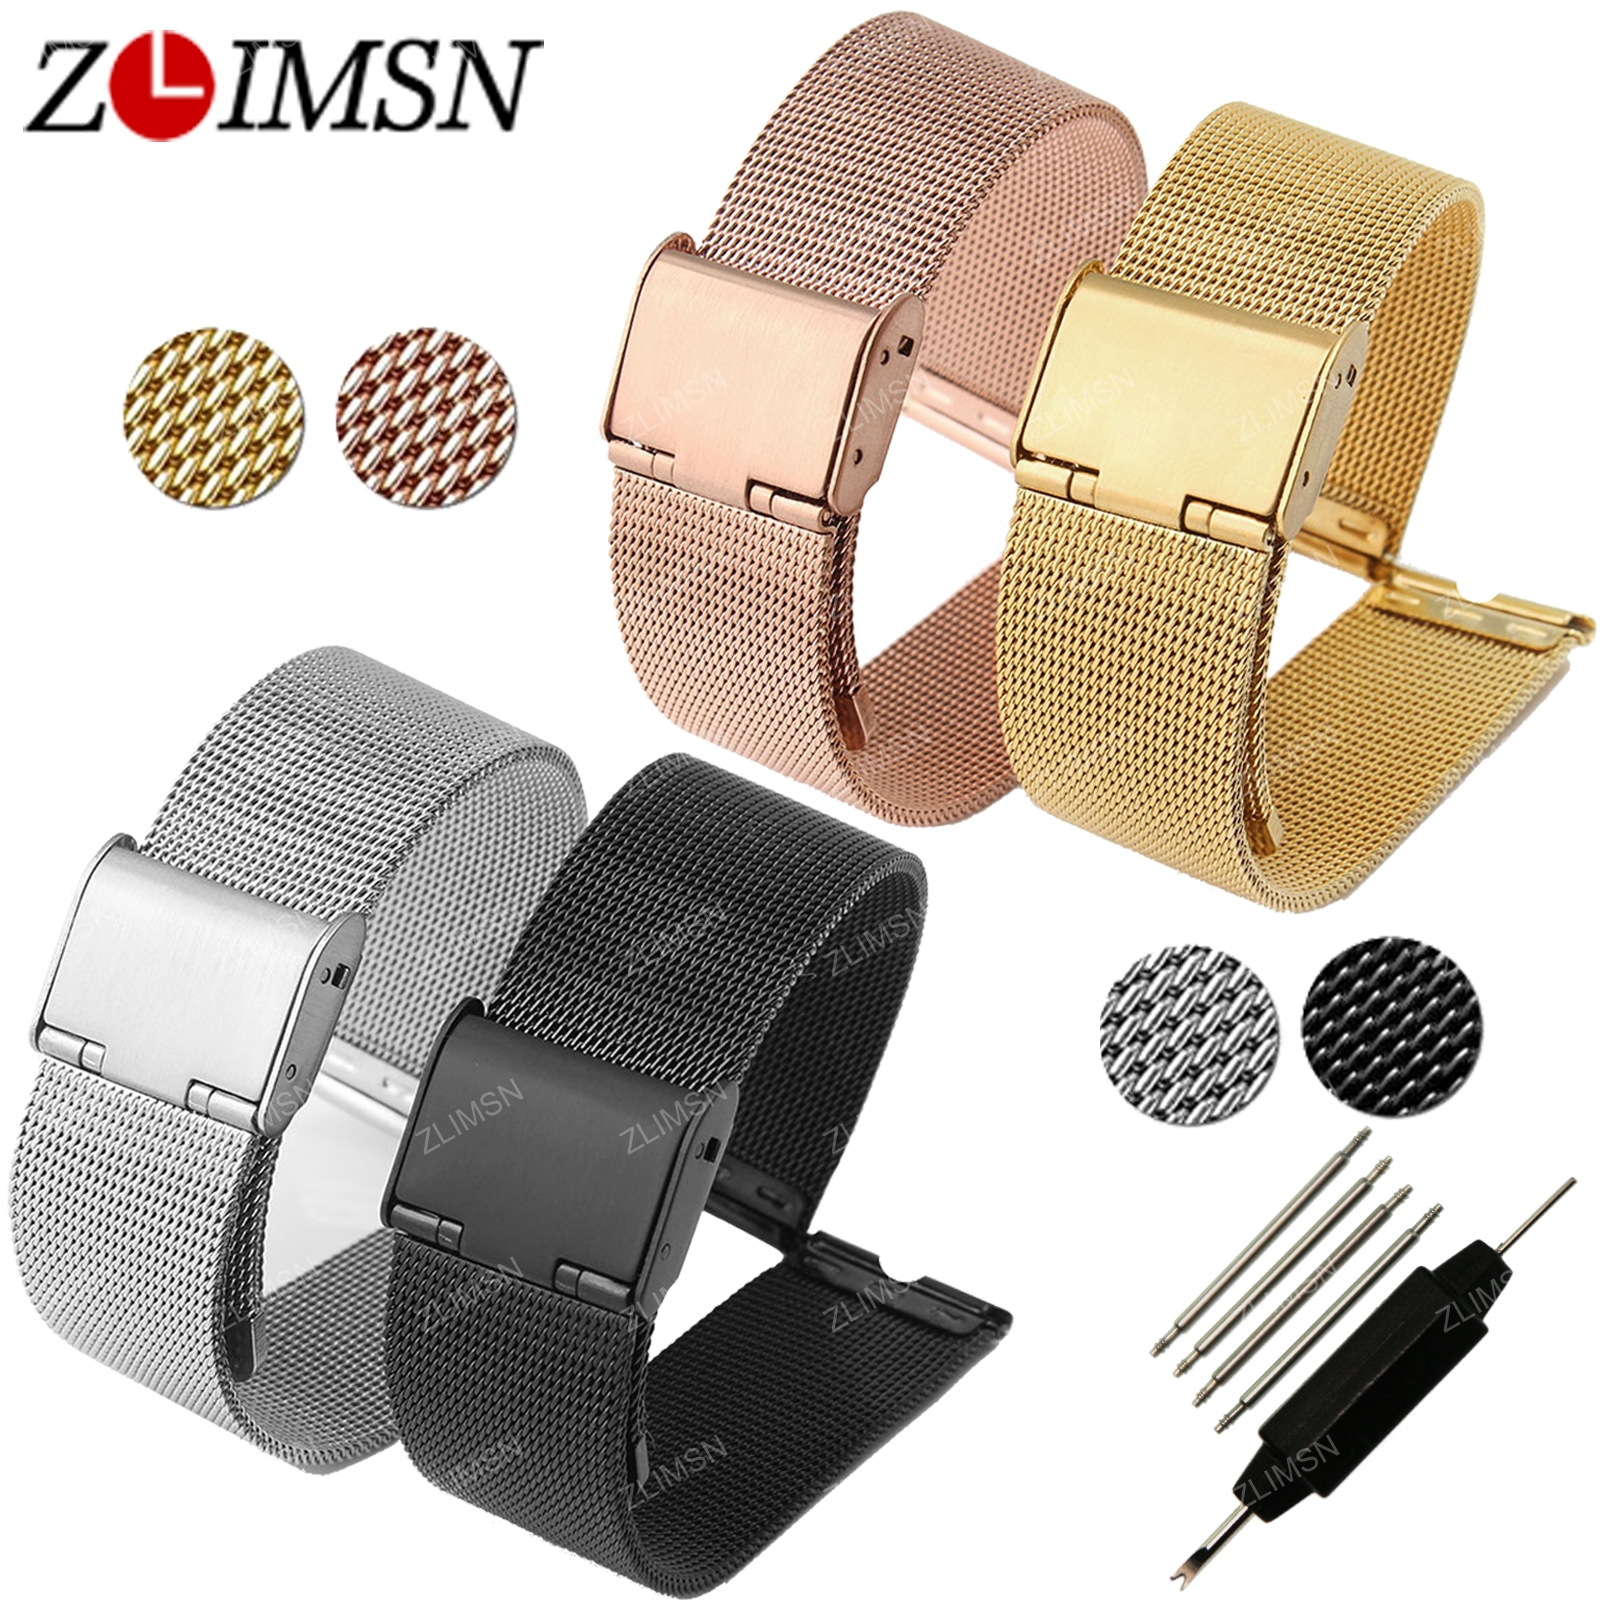 ZLIMSN Mens Womens Grid Mesh Watchbands Thick Adjustable Black Watch Band Strap Stainless Steel Buckle Silver Rose Gold relogio<br><br>Aliexpress